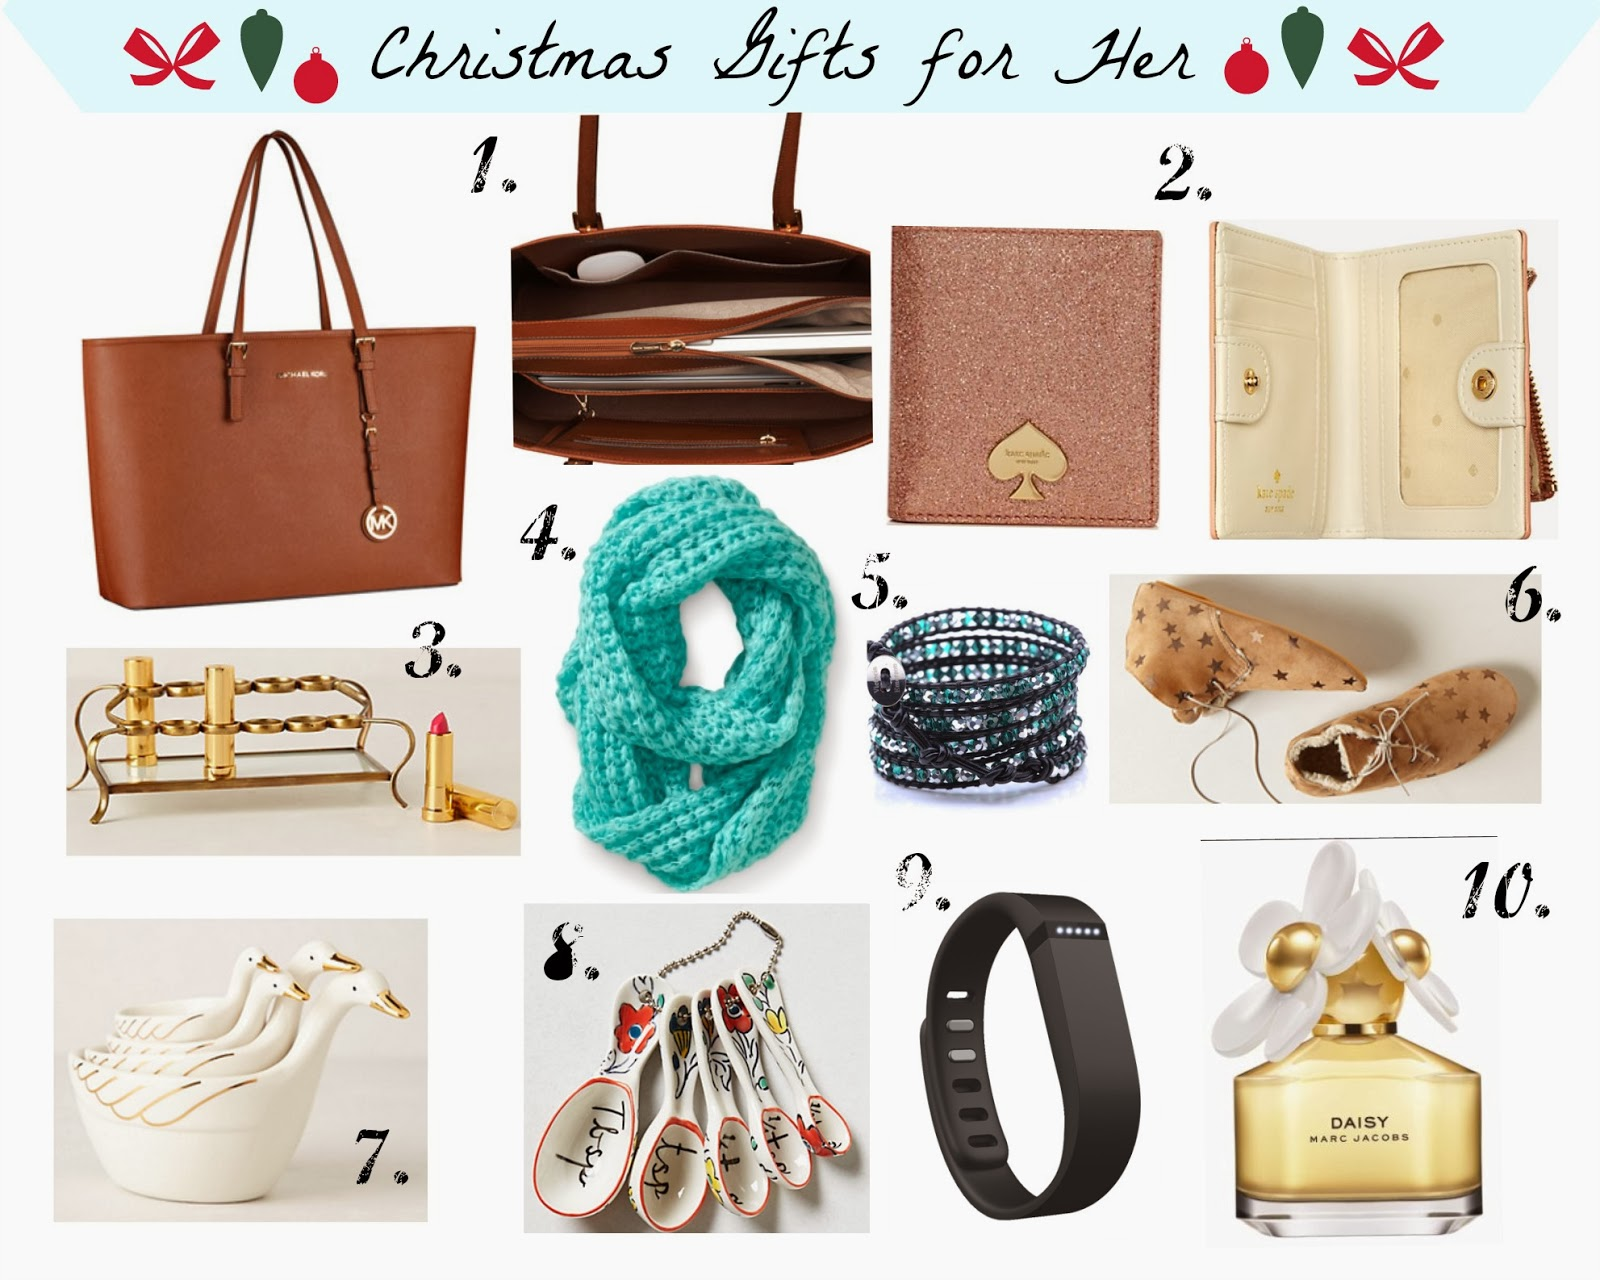 Christmas Gift Ideas For Him Her Michael Kors Jet Set Macbook Travel Tote